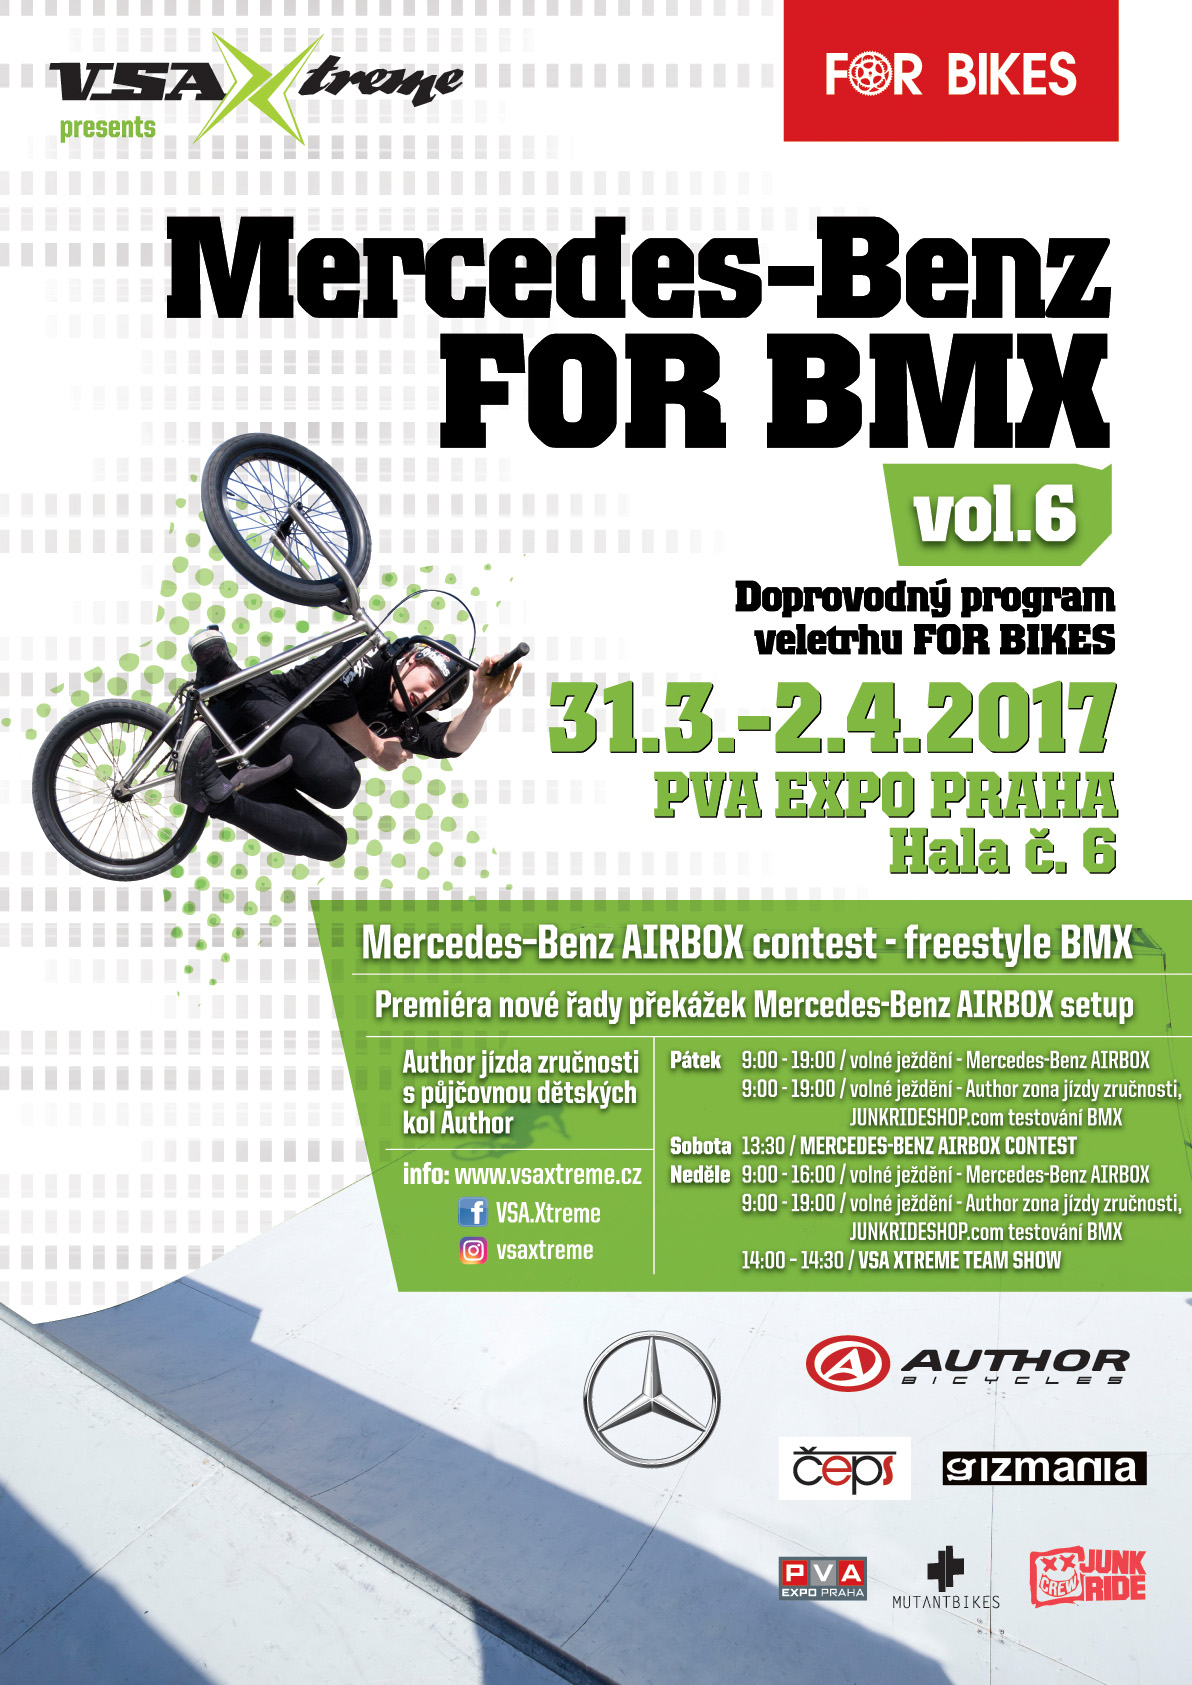 For-Bikes-2017_A2_preview05